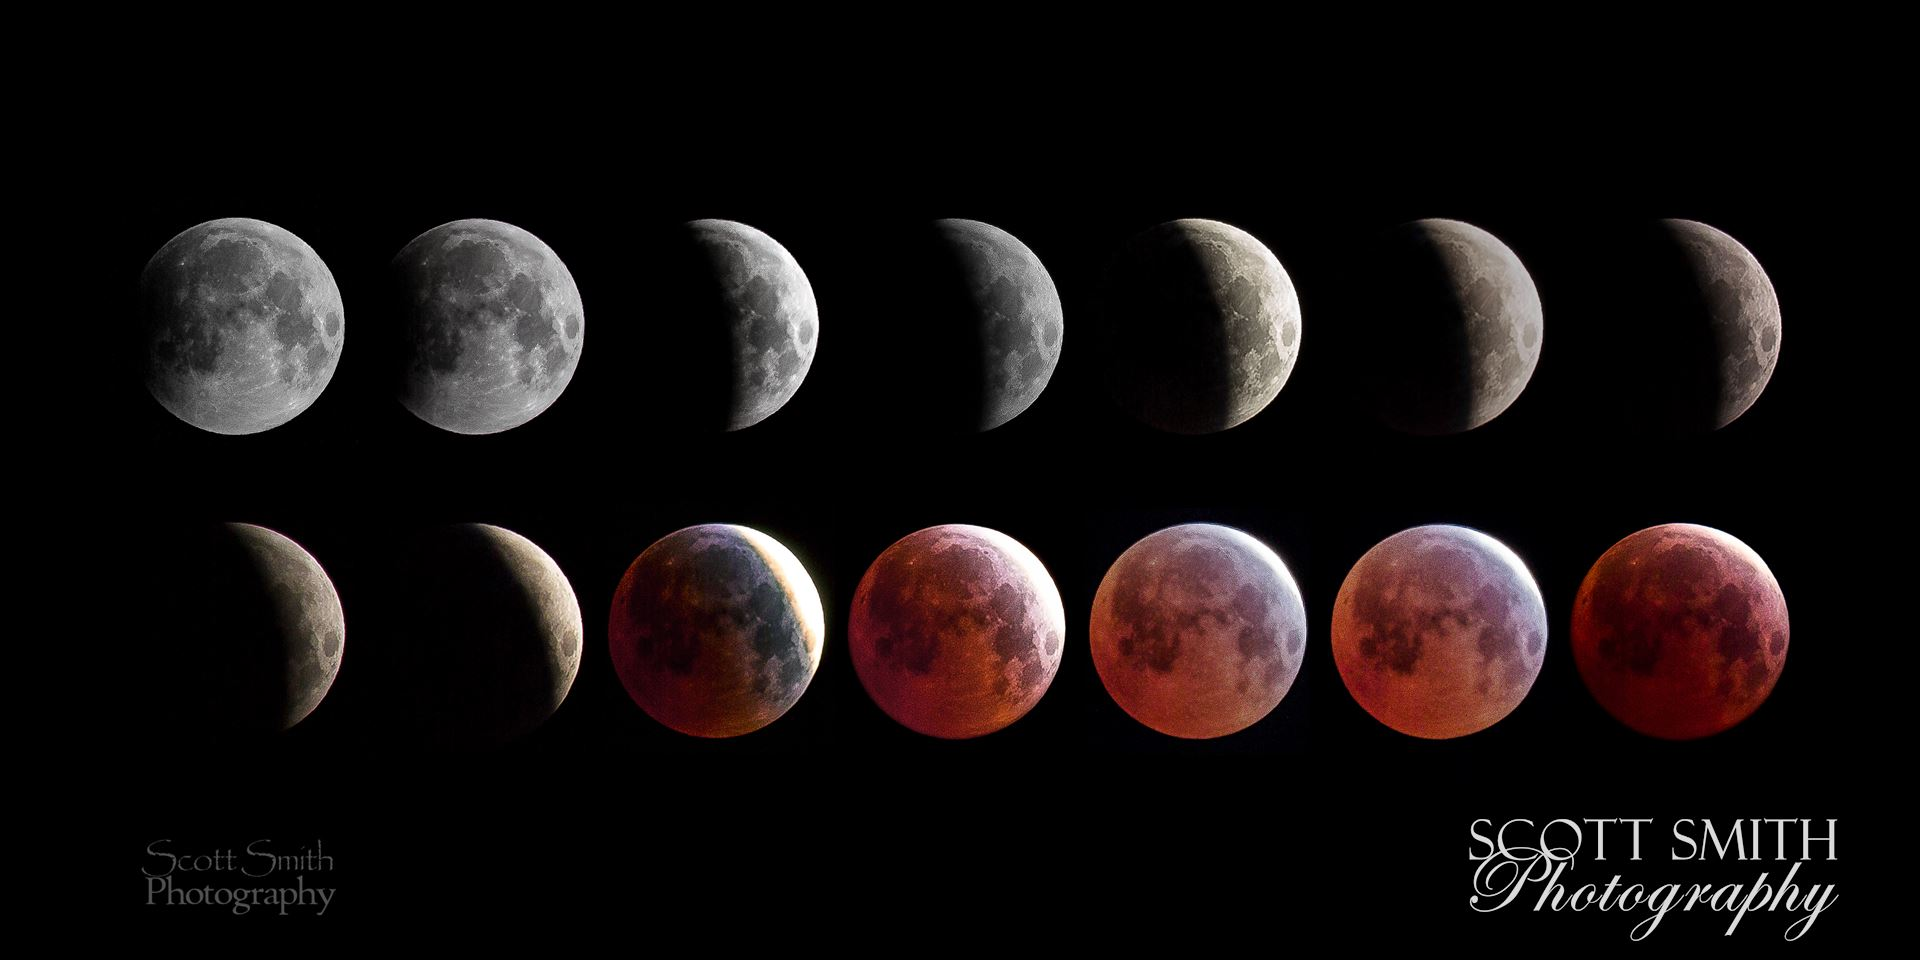 April 4 2015 Eclipse CollageA collage of 14 images from the spring 2015 lunar eclipse, showing the different phases of the moon.